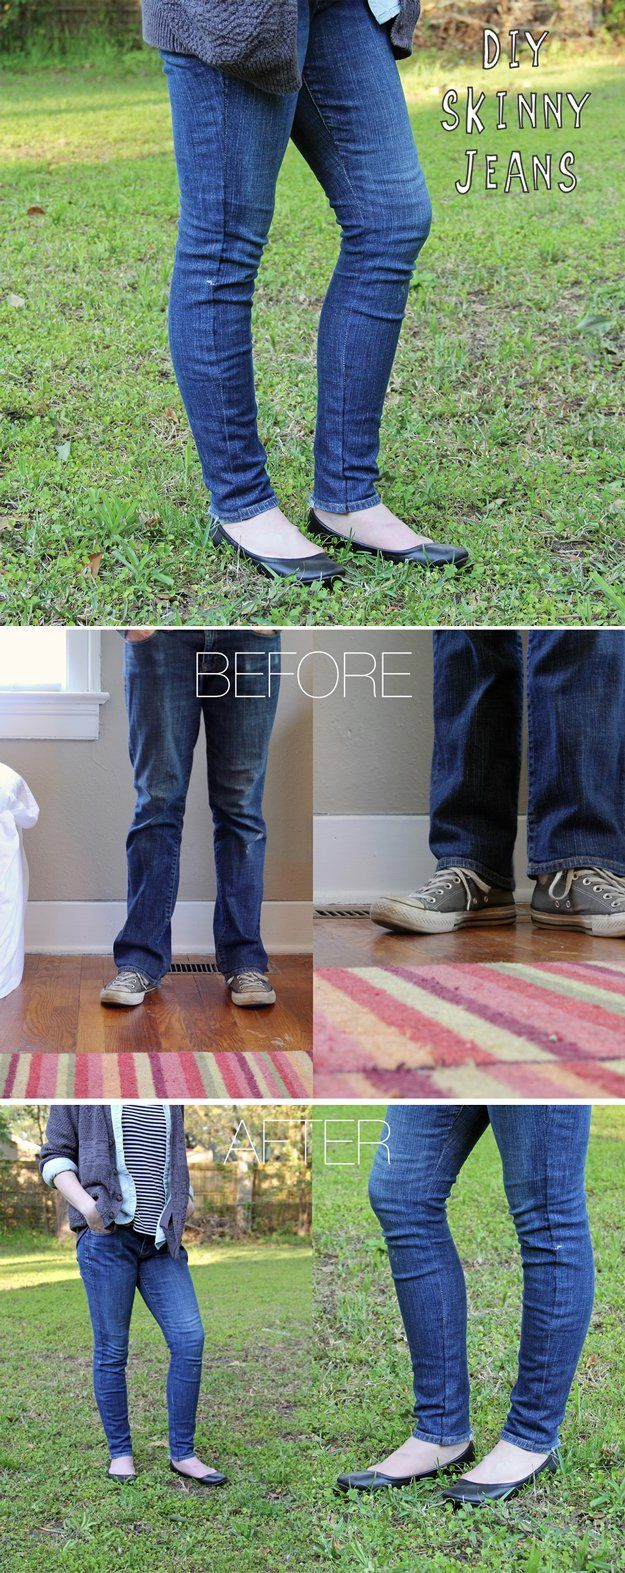 Easy Pants Refashion Project for Women and Teens | DIY Skinny Jeans by DIY Ready at http://diyready.com/diy-clothes-pants-skirts-for-women/